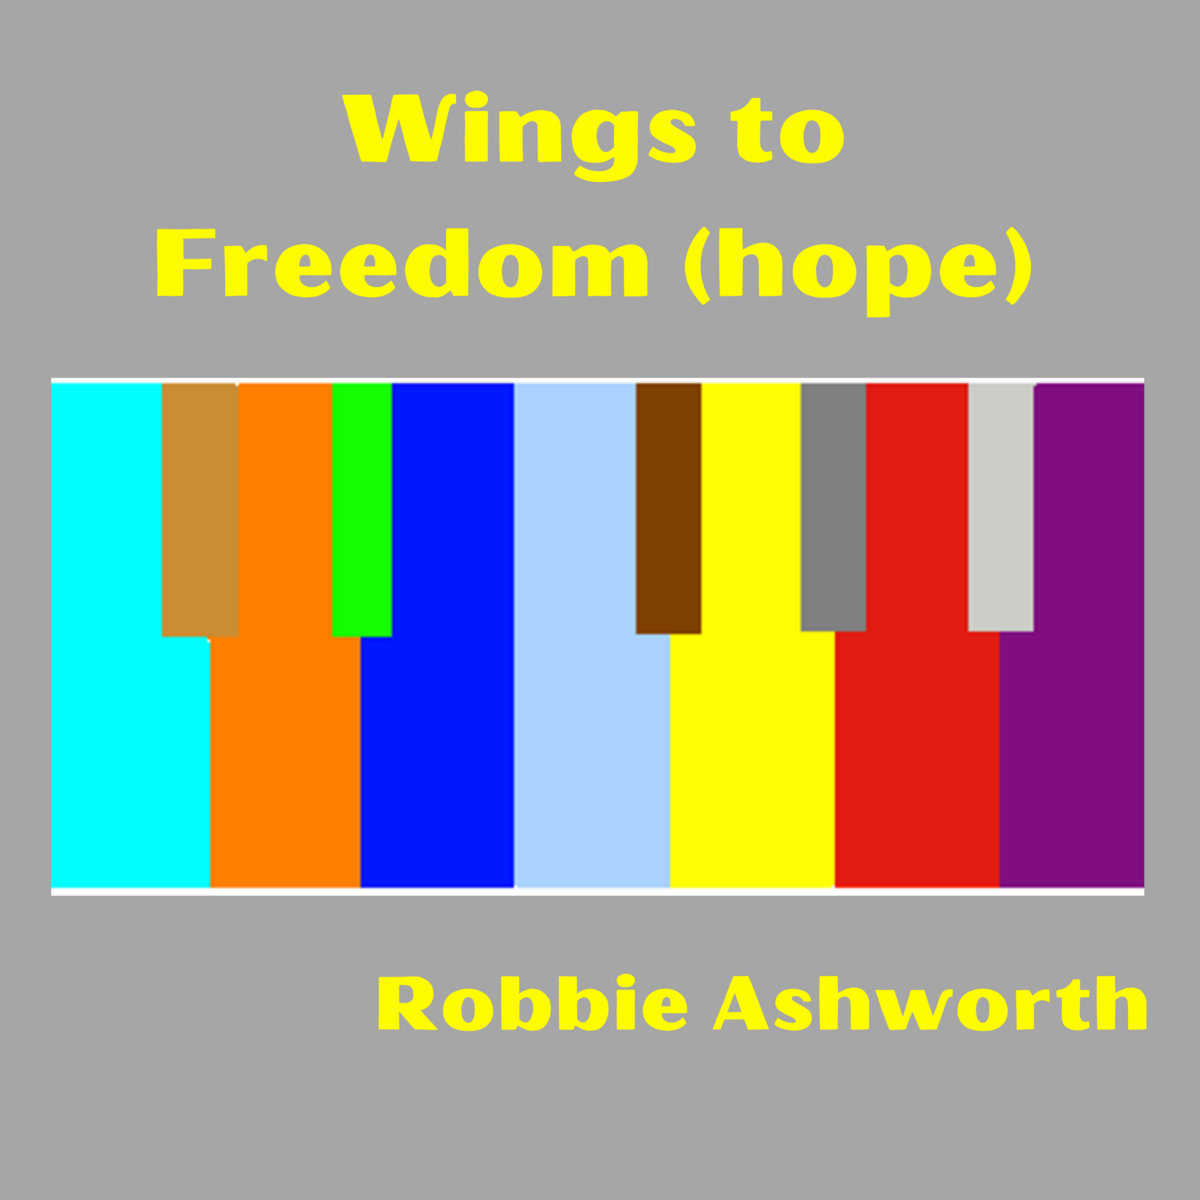 Wings to Freedom (hope) by Robbie Ashworth